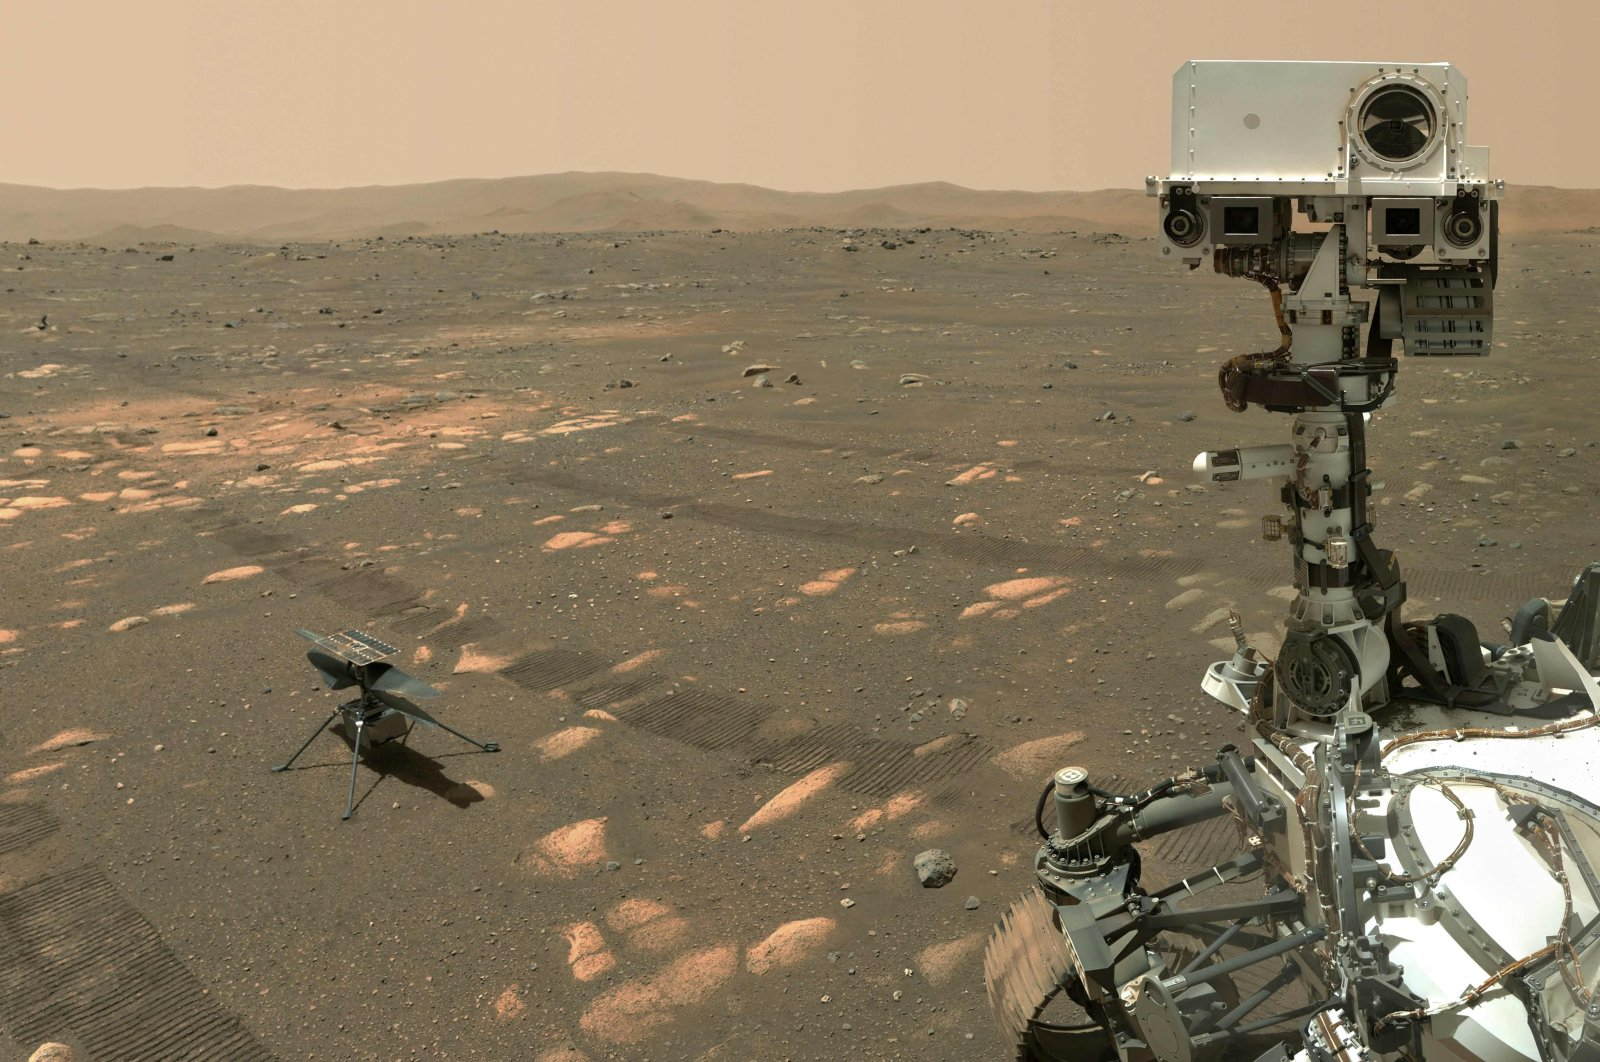 The Perseverance Mars rover in a selfie taken with the WATSON (Wide Angle Topographic Sensor for Operations and eNgineering) camera with the Ingenuity helicopter, seen here about 13 feet (3.9 meters) from the rover, on the 46th Martian day, or sol, of the mission, or April 6, 2021. (Photo by Handout / NASA/JPL-Caltech/MSSS / AFP)